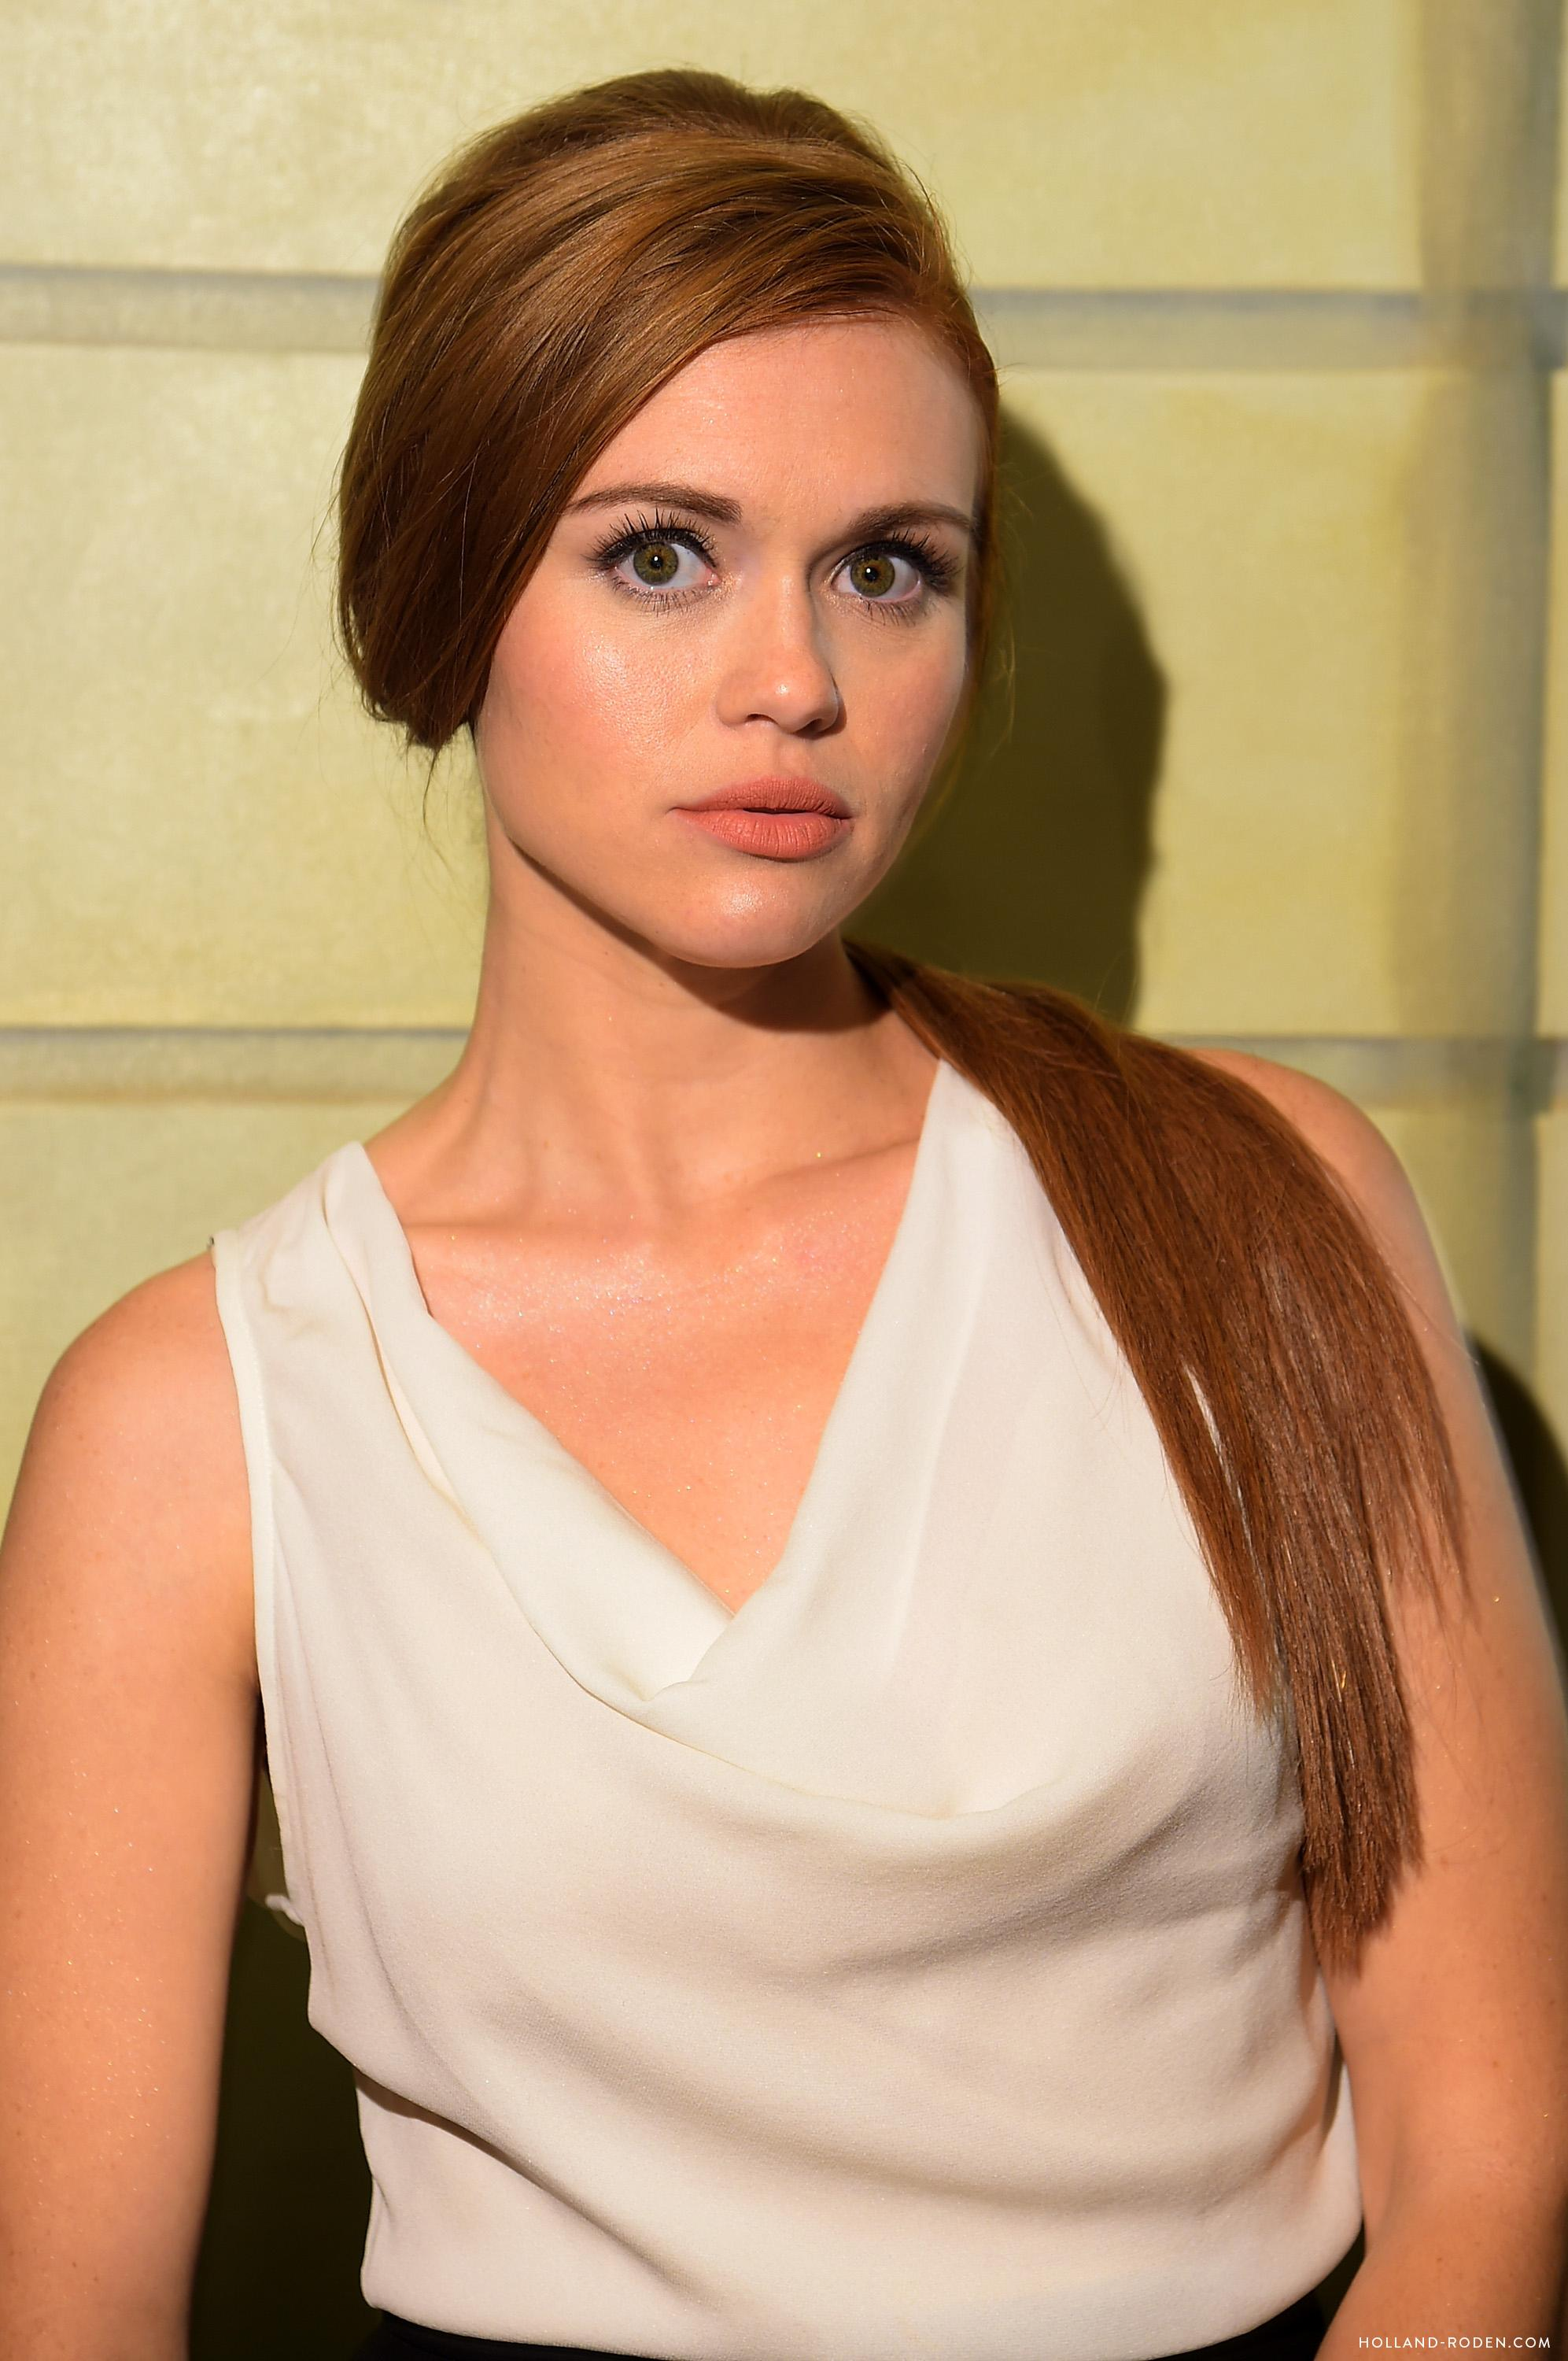 Holland attending various shows at New York Fashion Week